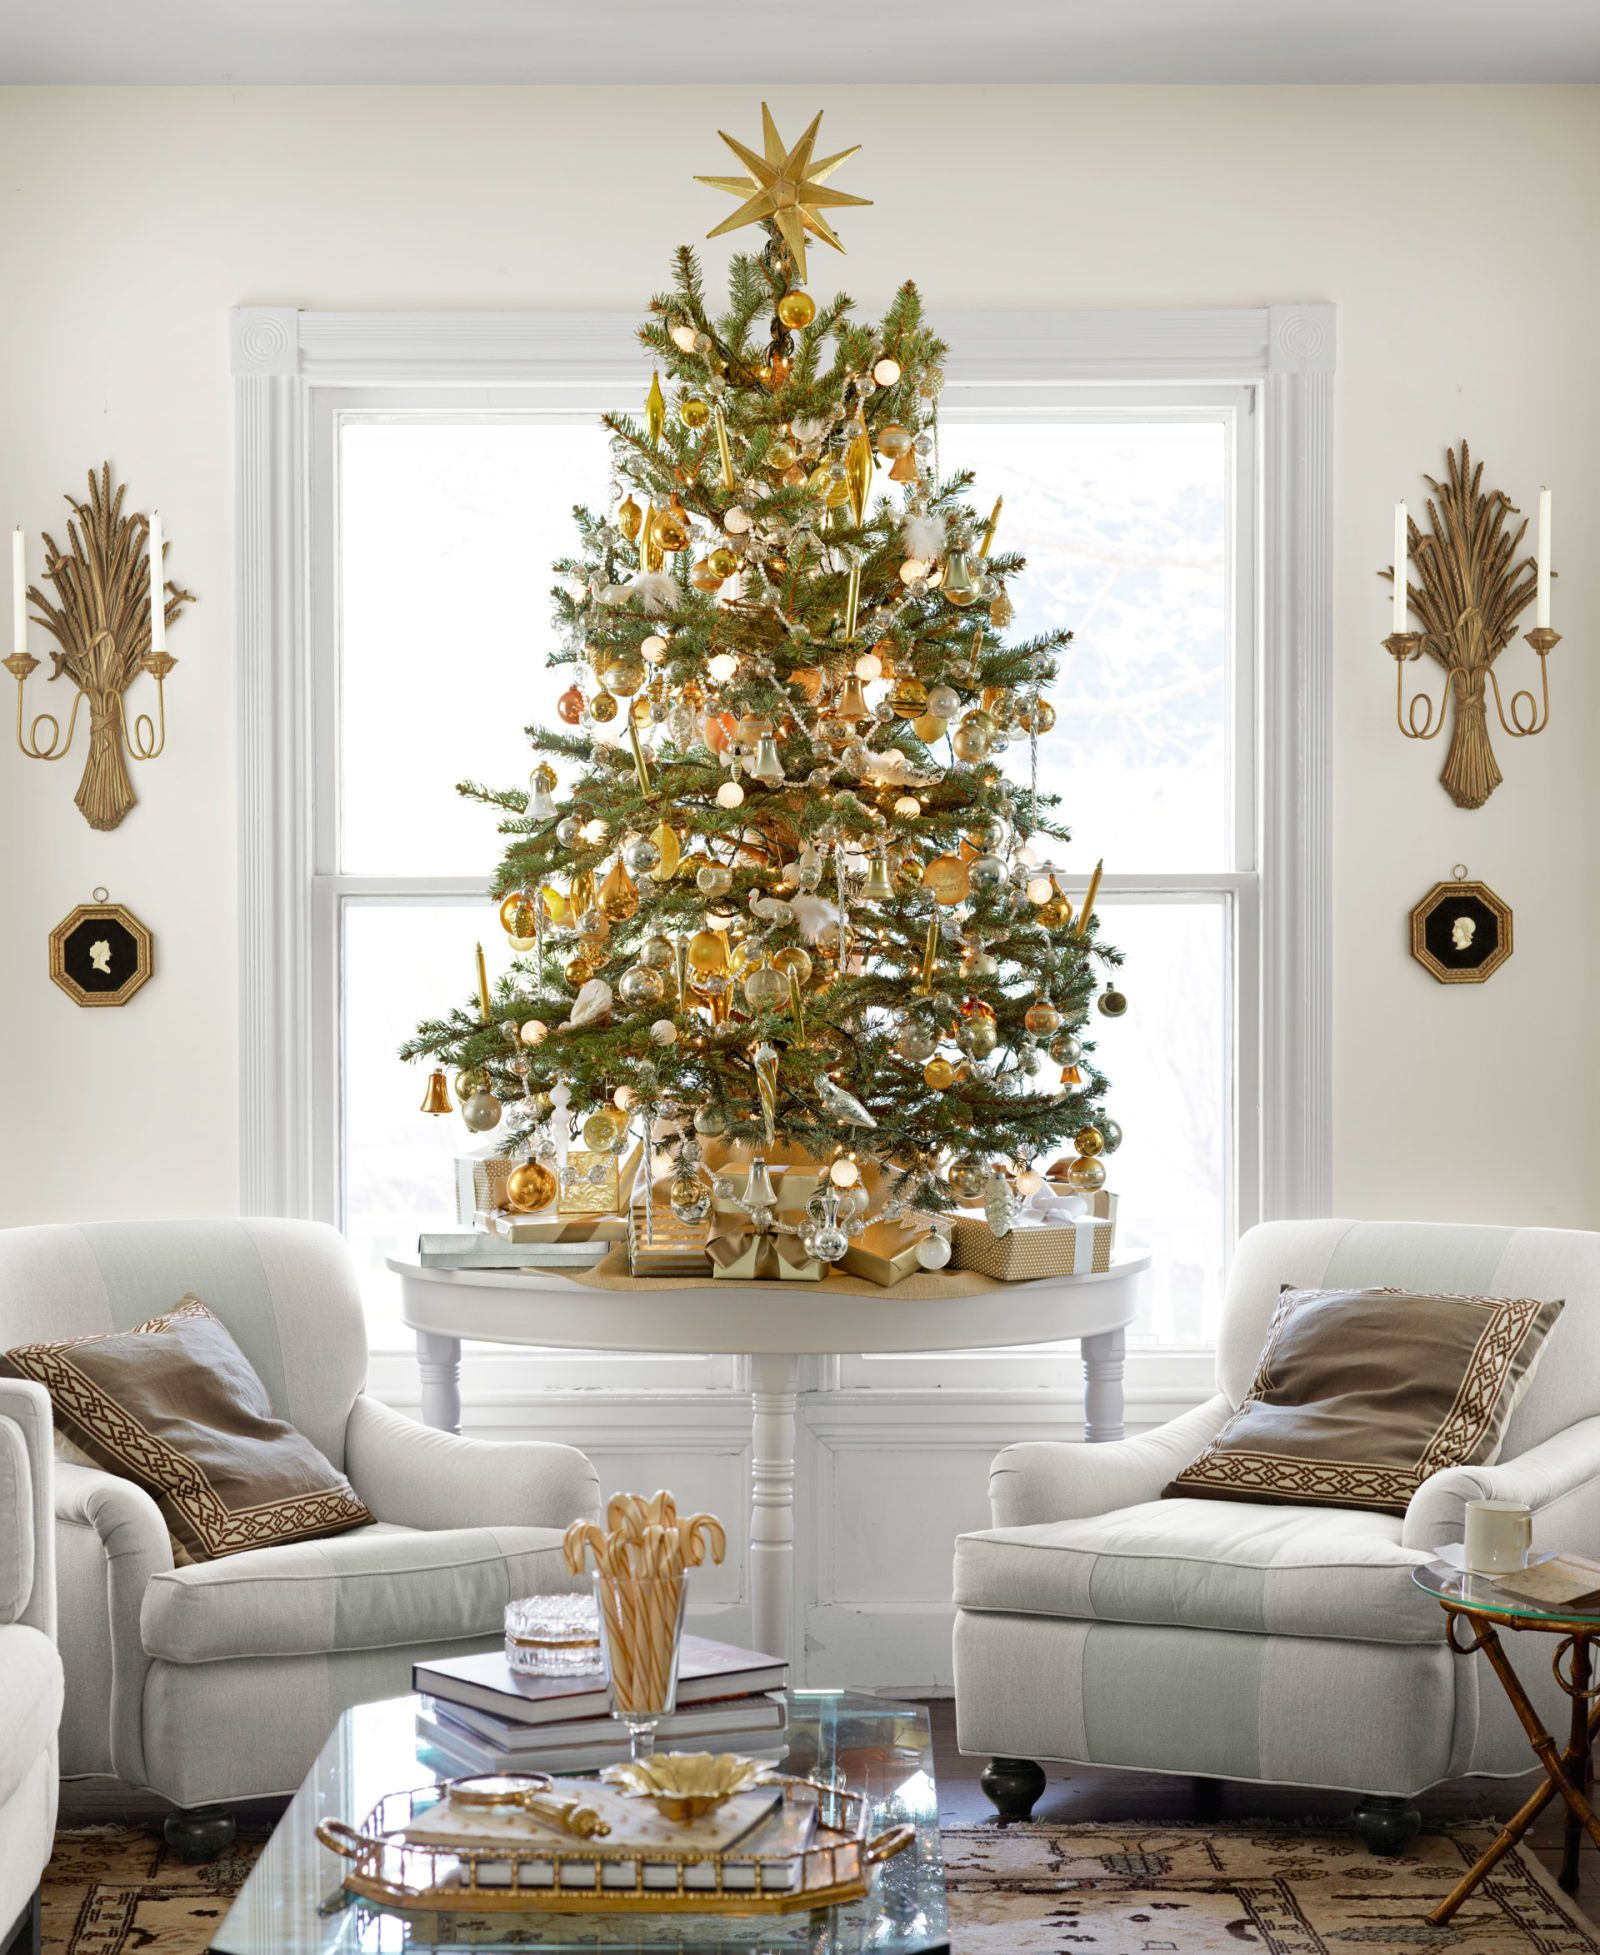 15 Ways To Re Deck The Halls With Designer Eddie Ross Neutral Christmas Decor Elegant Christmas Decor Small Christmas Trees Decorated